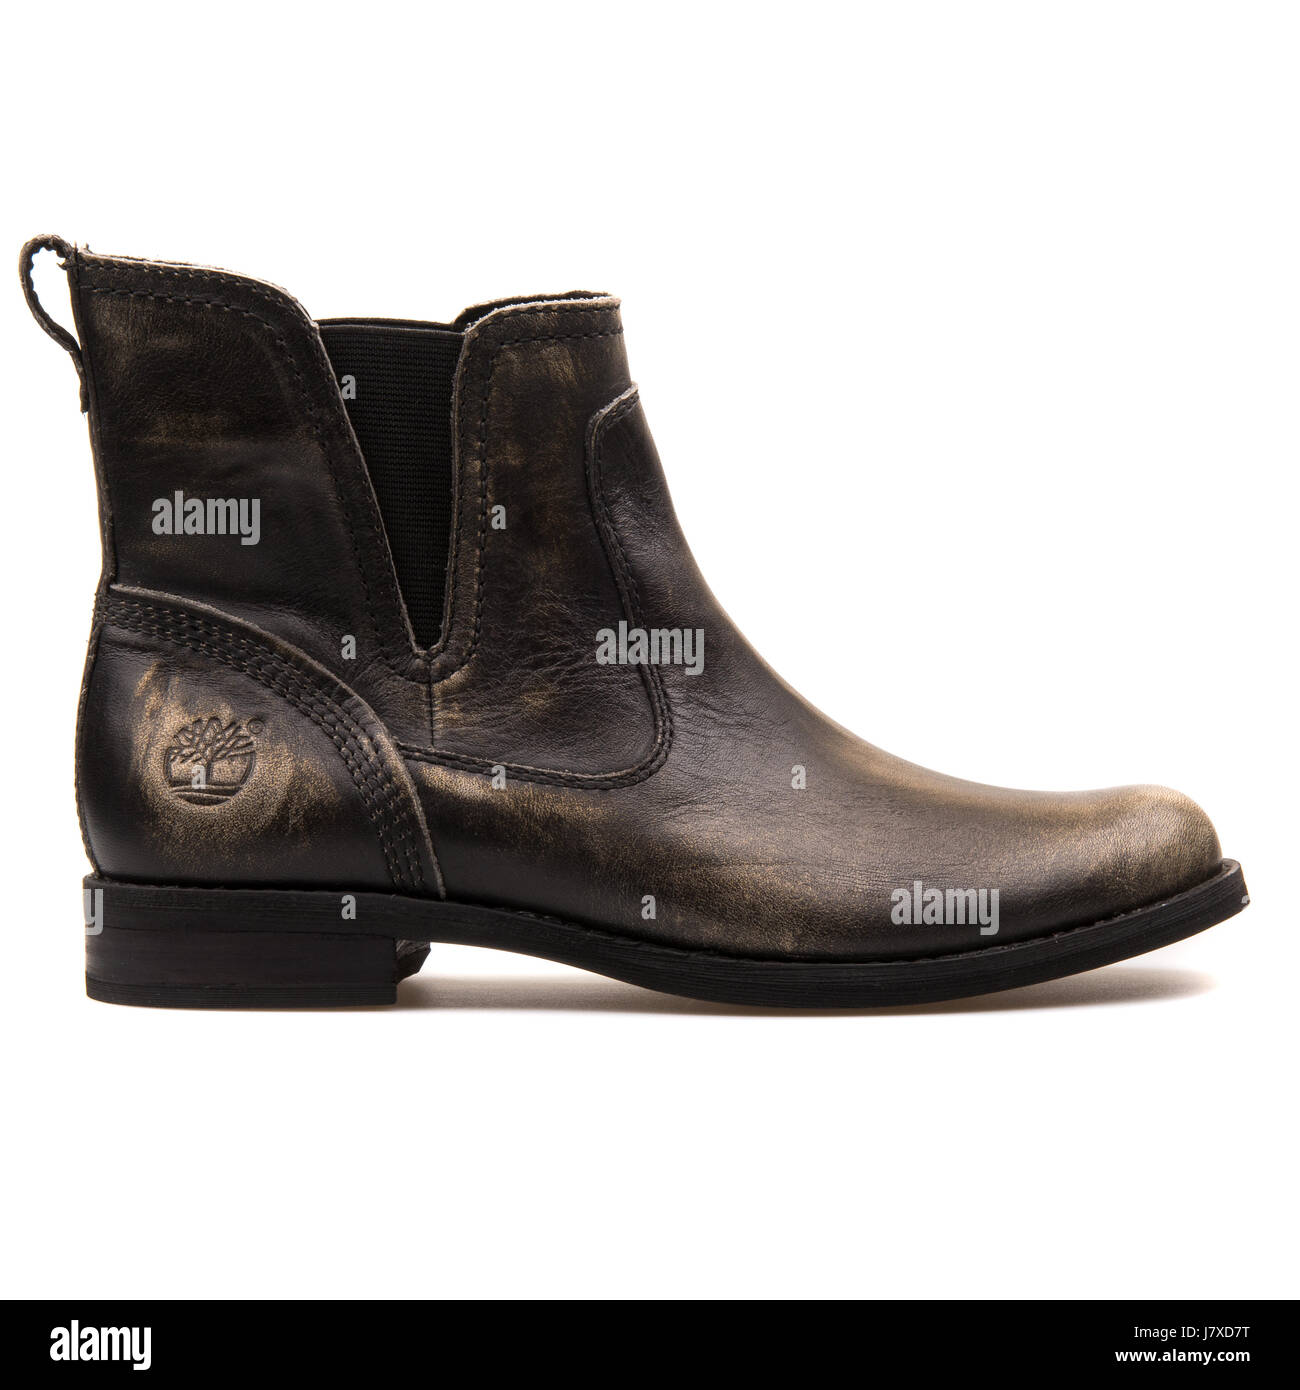 Timberland Savin Hill Chelsea Grey Women's Leather Boots - A1212 - Stock Image